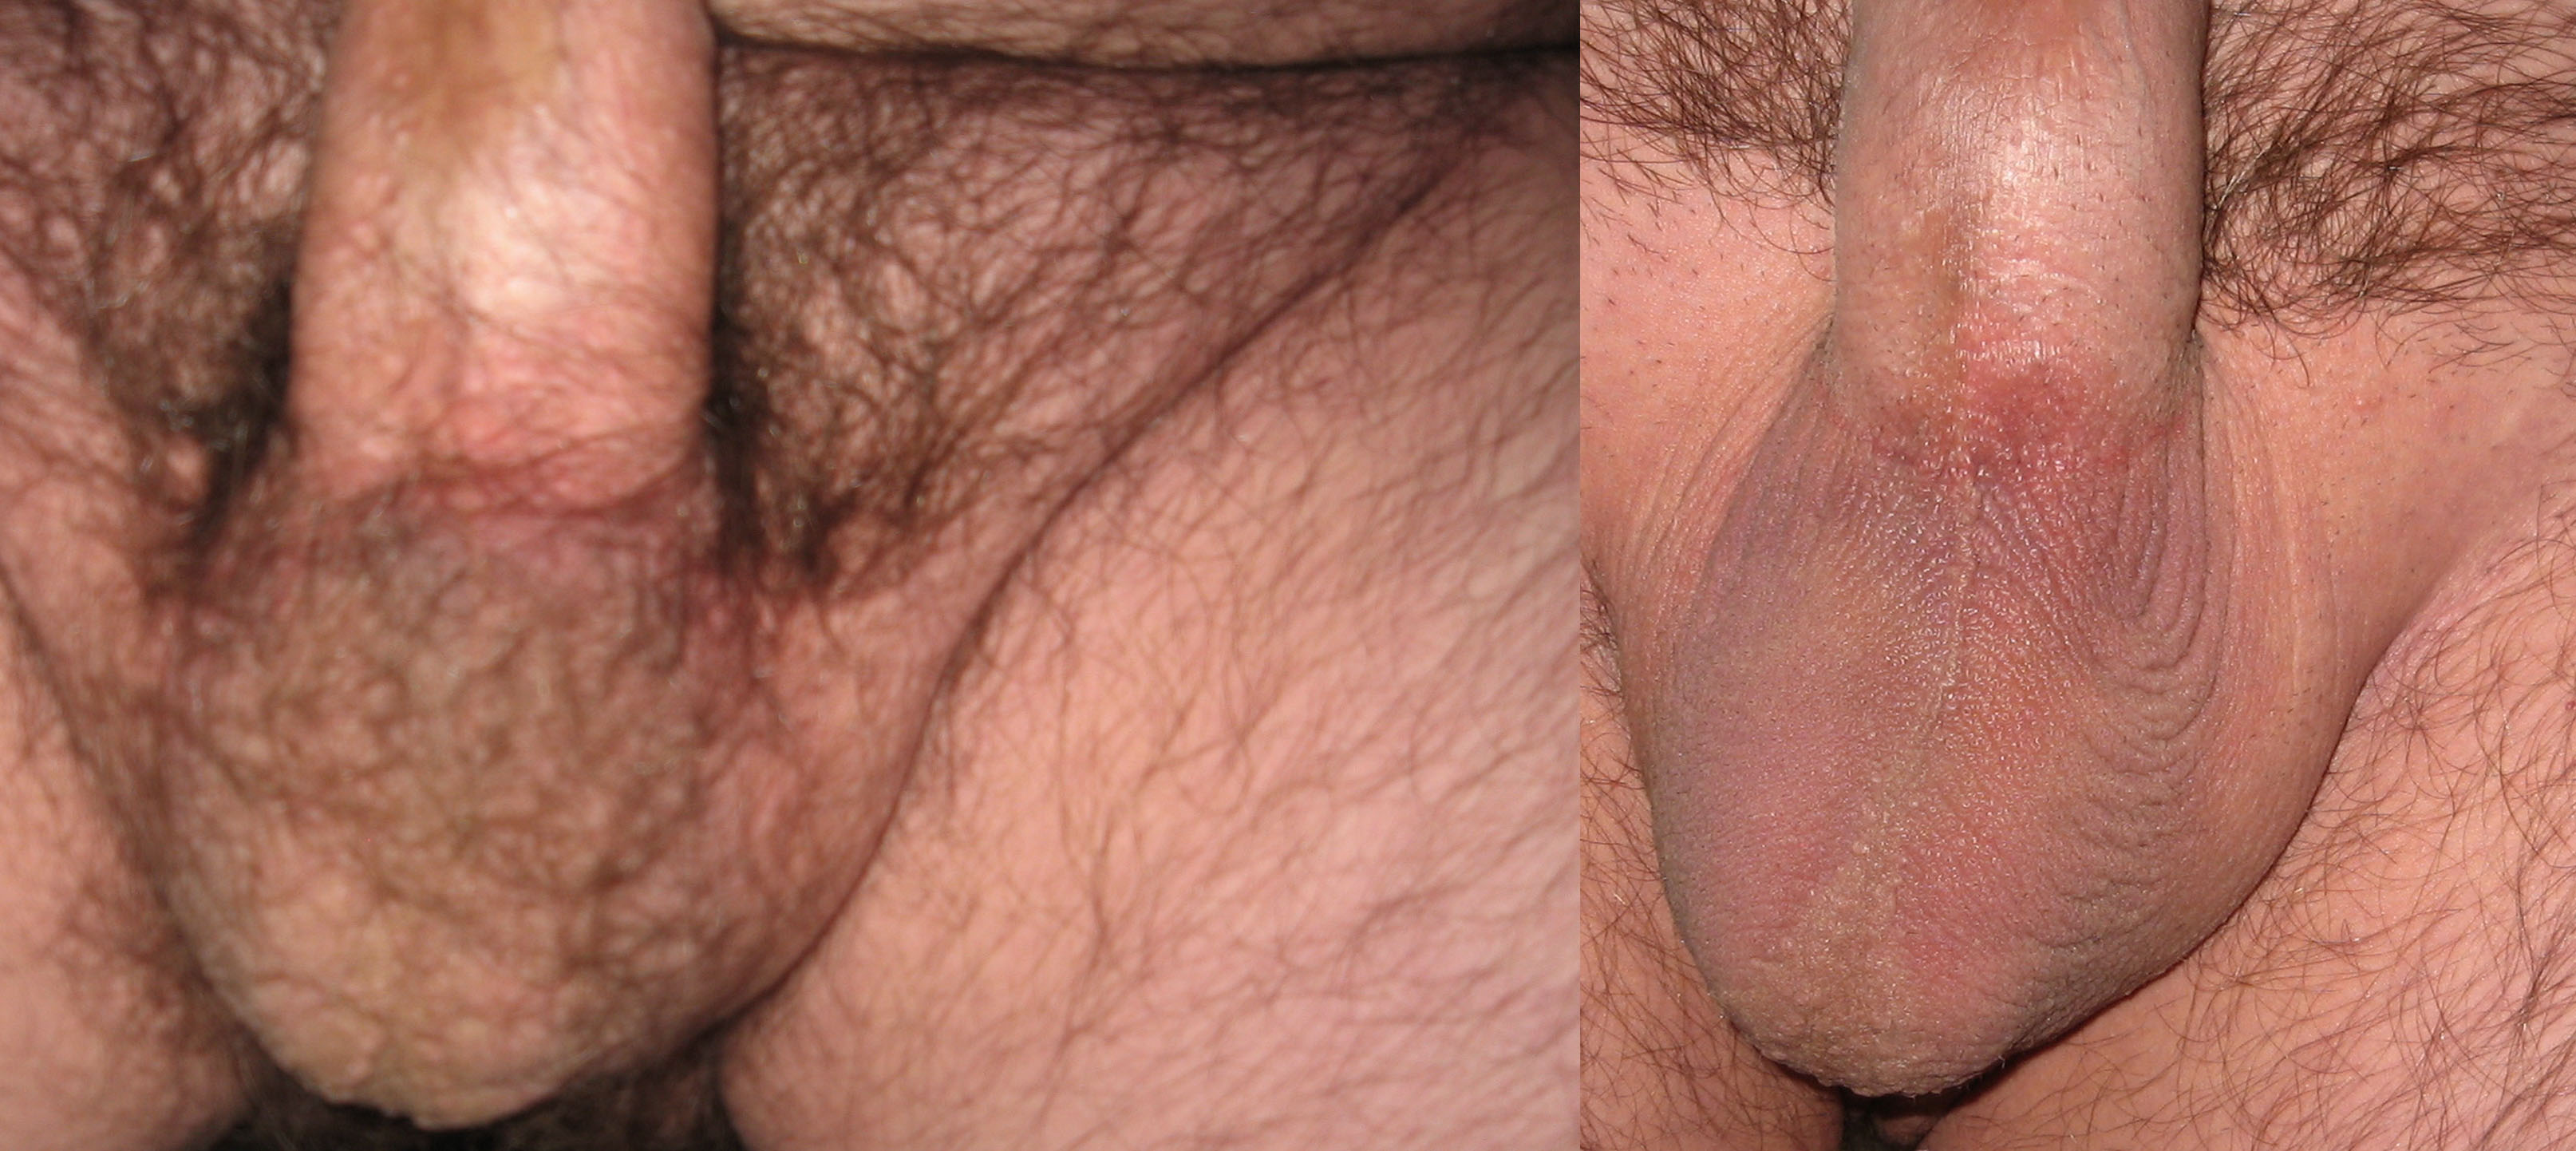 Usually, you shaved testicle pics Feige and